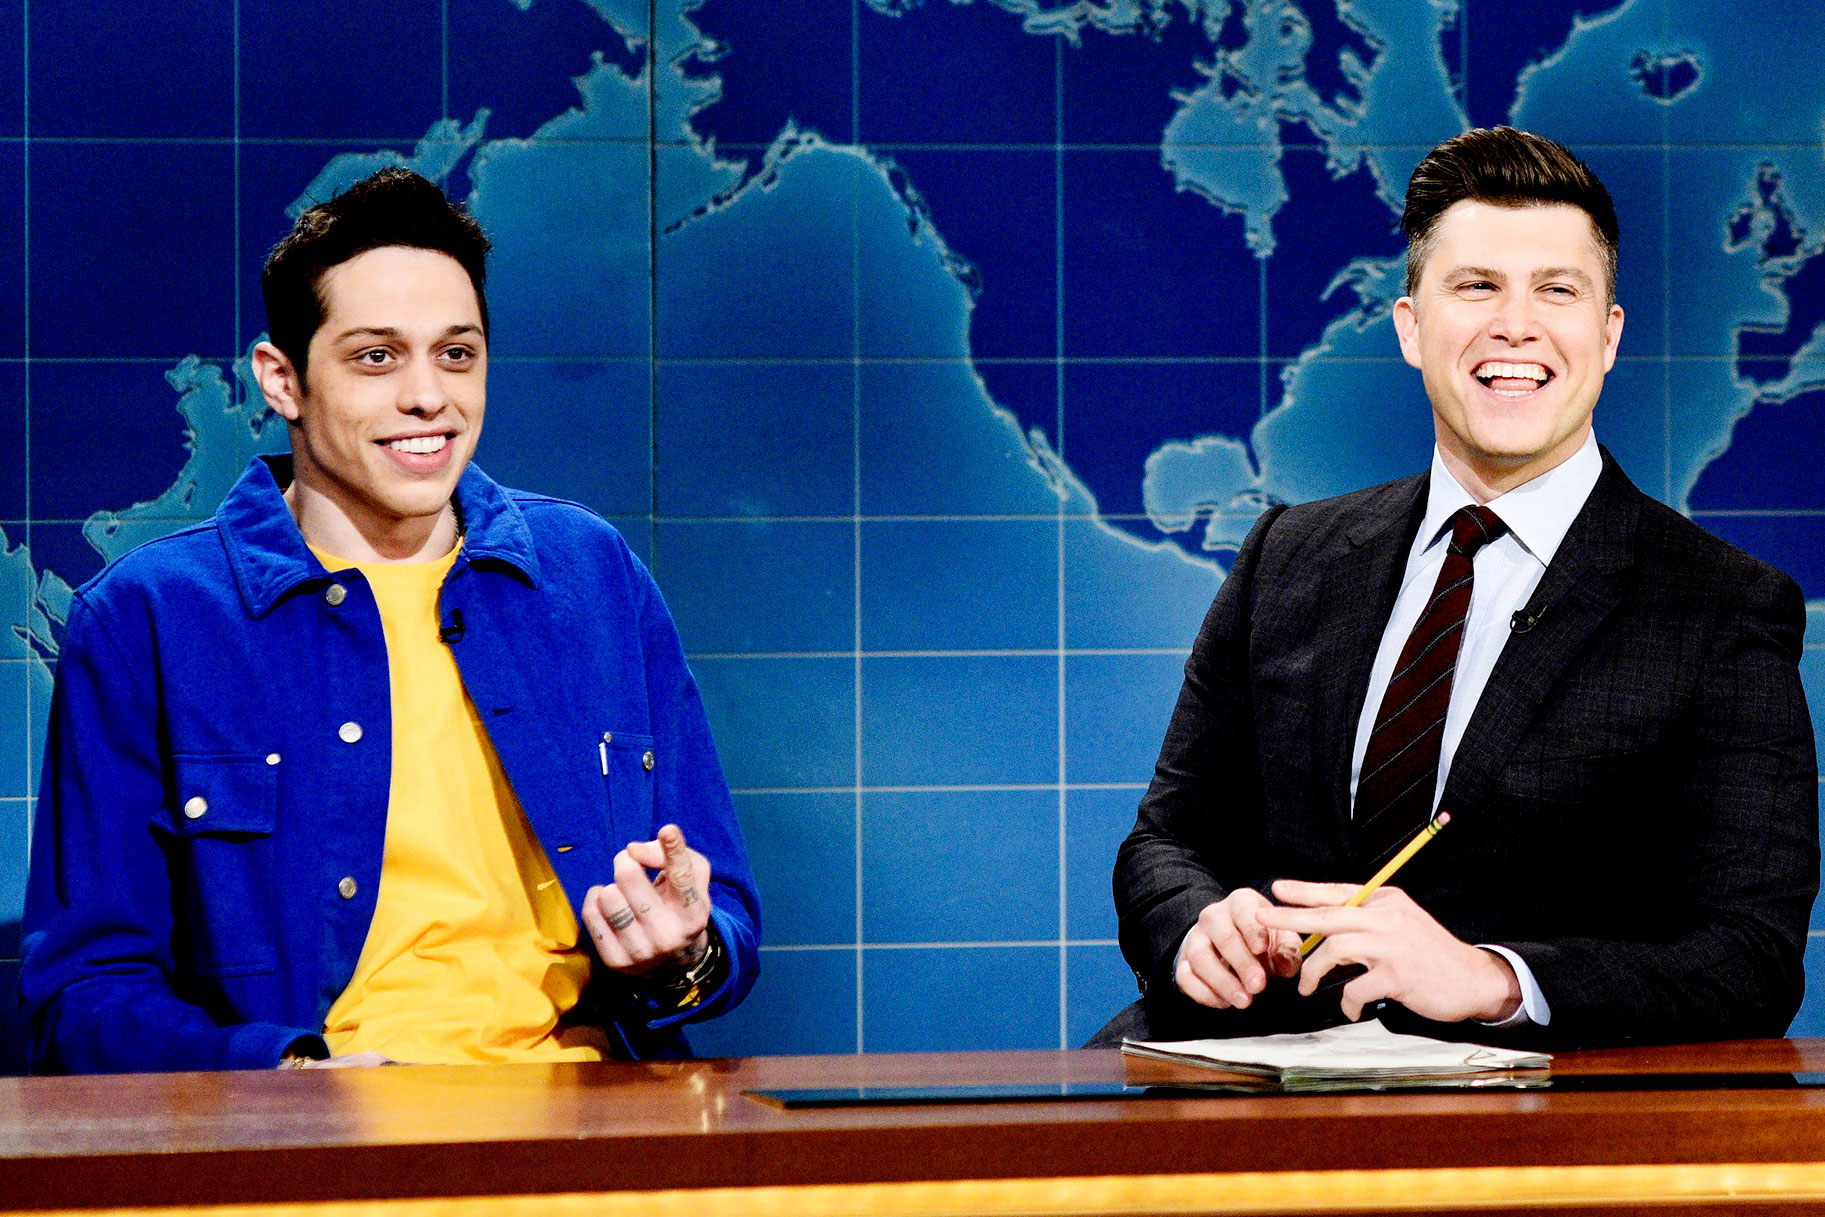 Pete Davidson SNL March 9, 2019